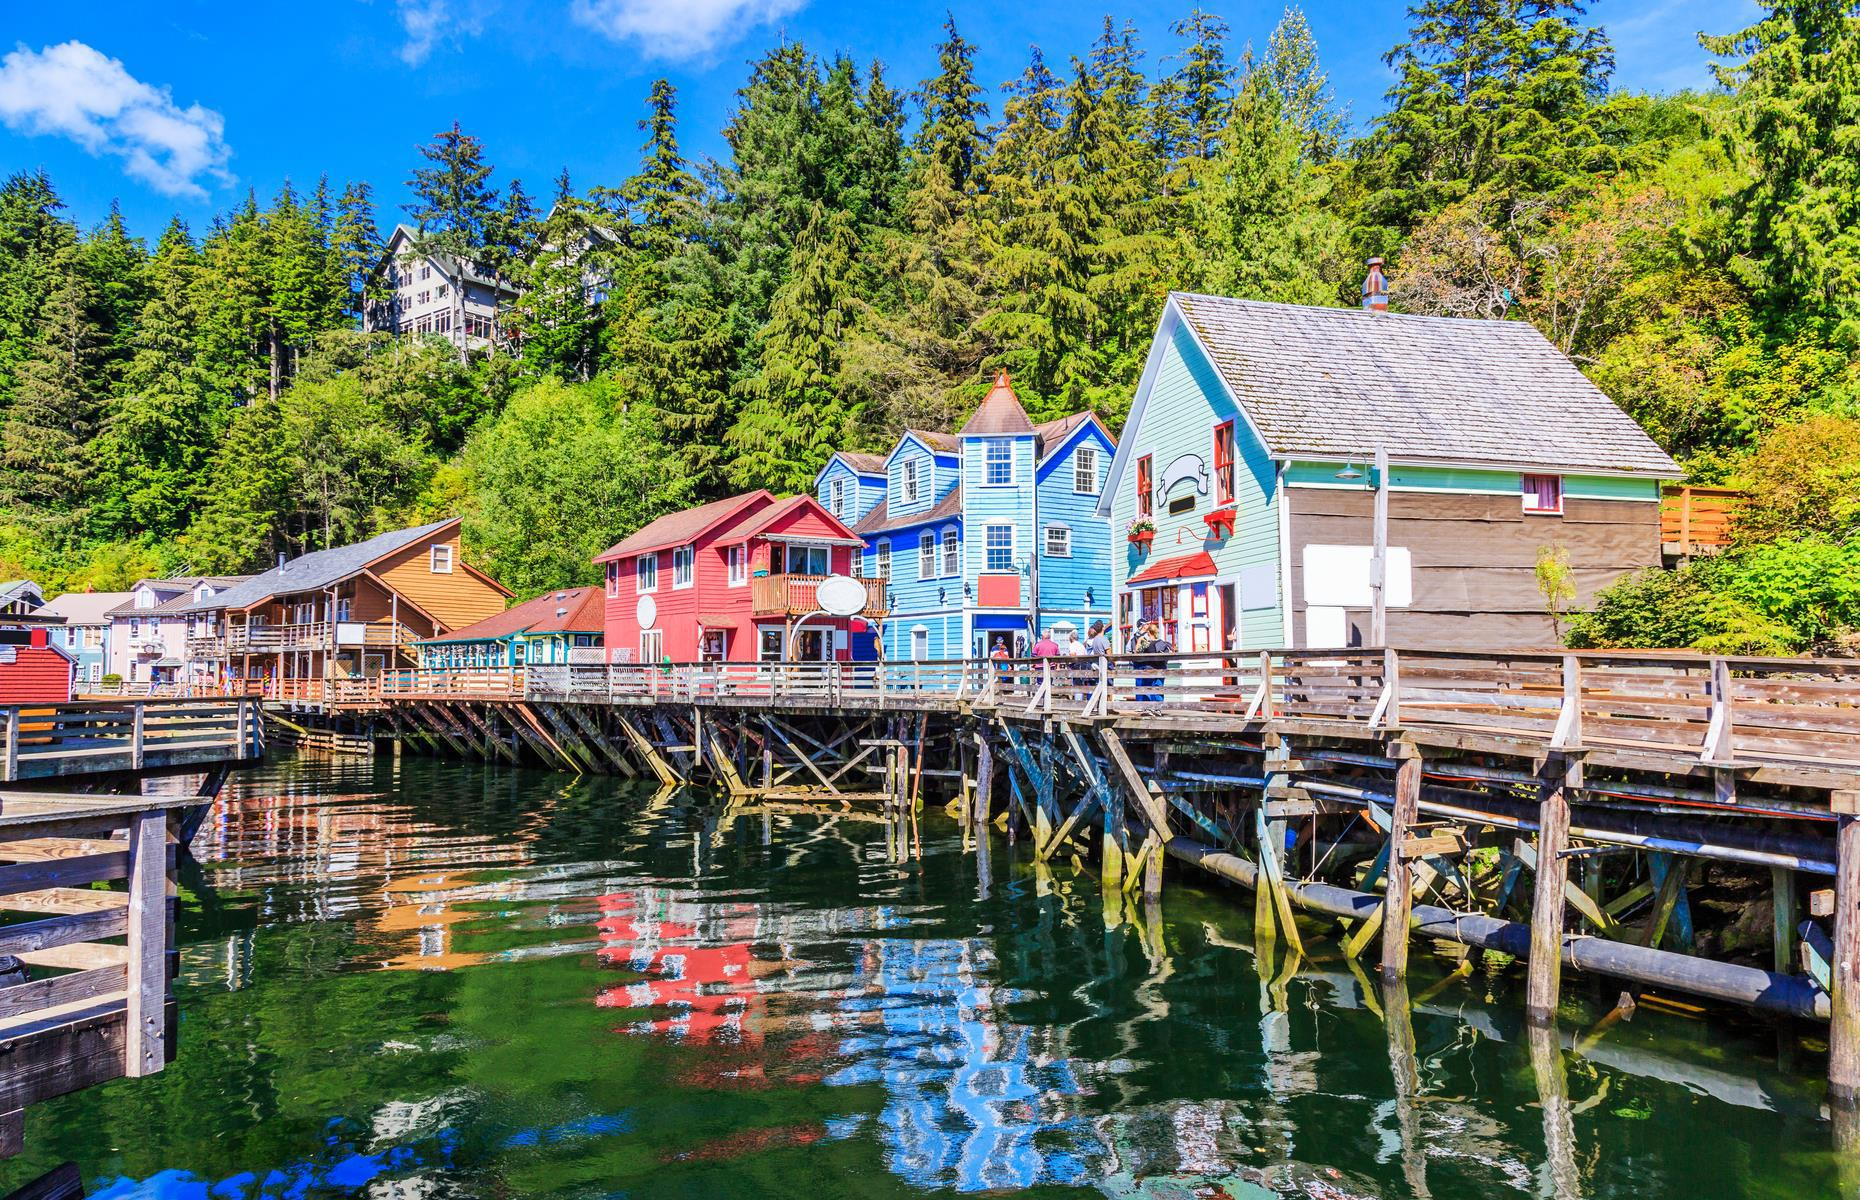 Slide 2 of 32: In the far south of the USA's most northerly state is Ketchikan, centered on a small cluster of colorful clapboard stilt houses perched over Ketchikan Creek. The city is known for its indigenous (mostly Tlingit and Haida) heritage and is the best place in the country to see intricately carved and brightly painted totem poles in their intended environment. And what an environment it is, with lush green forests, glacier-carved valleys and looming mountains just outside the city. Here's everything you need to know if you're traveling to Alaska from another state.